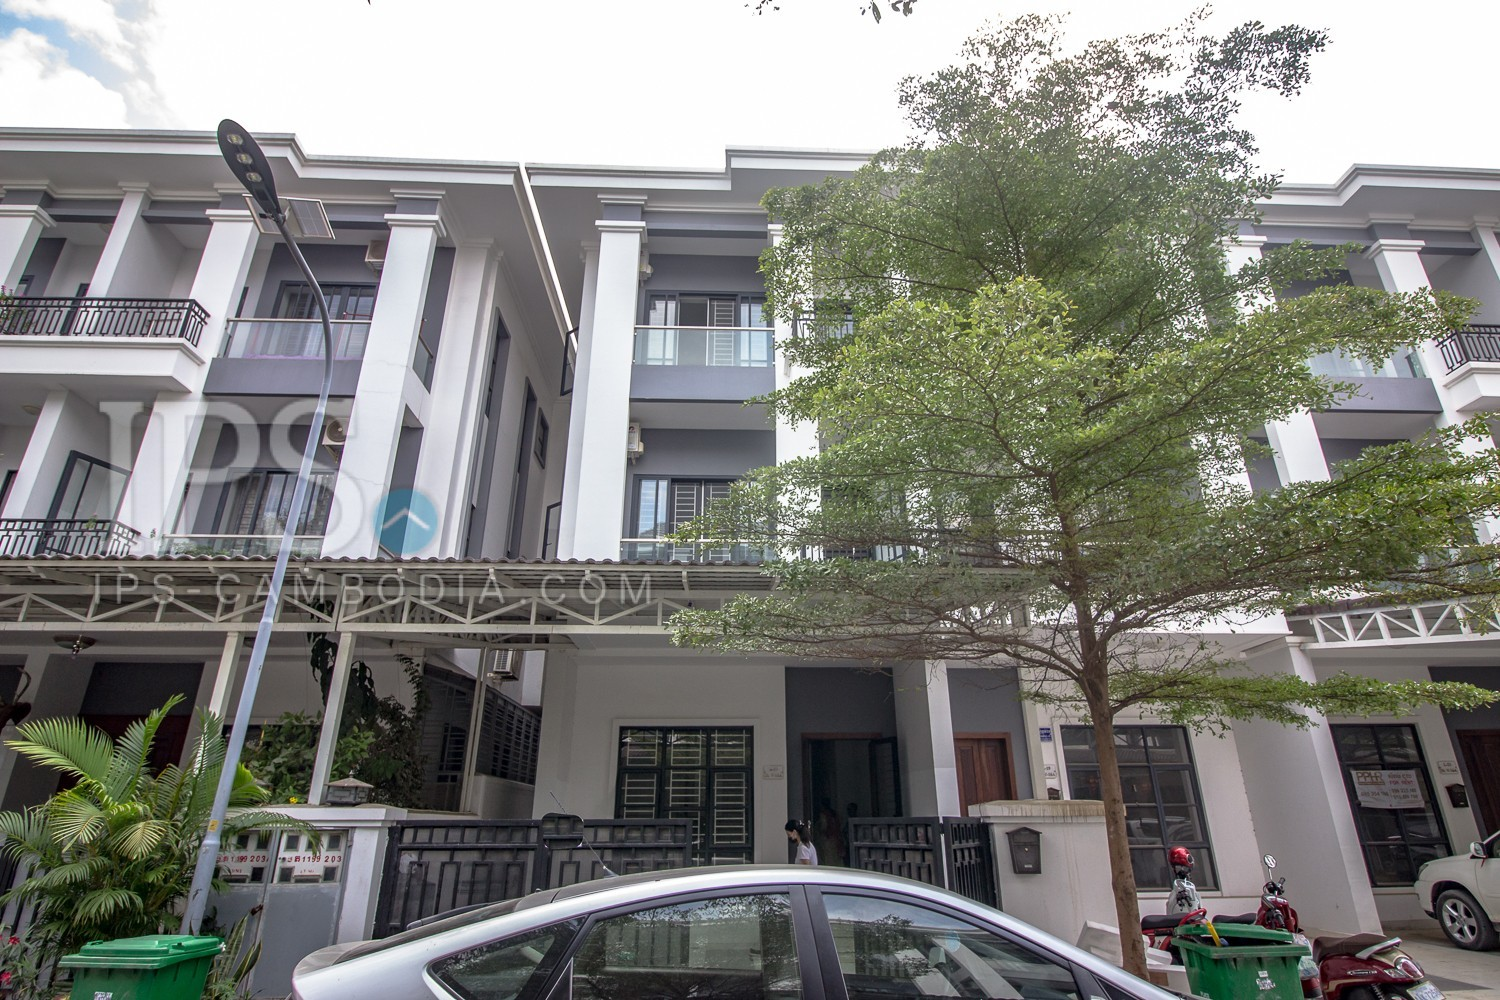 4 Bedroom Twin Villa For Rent - Meanchey, Phnom Penh